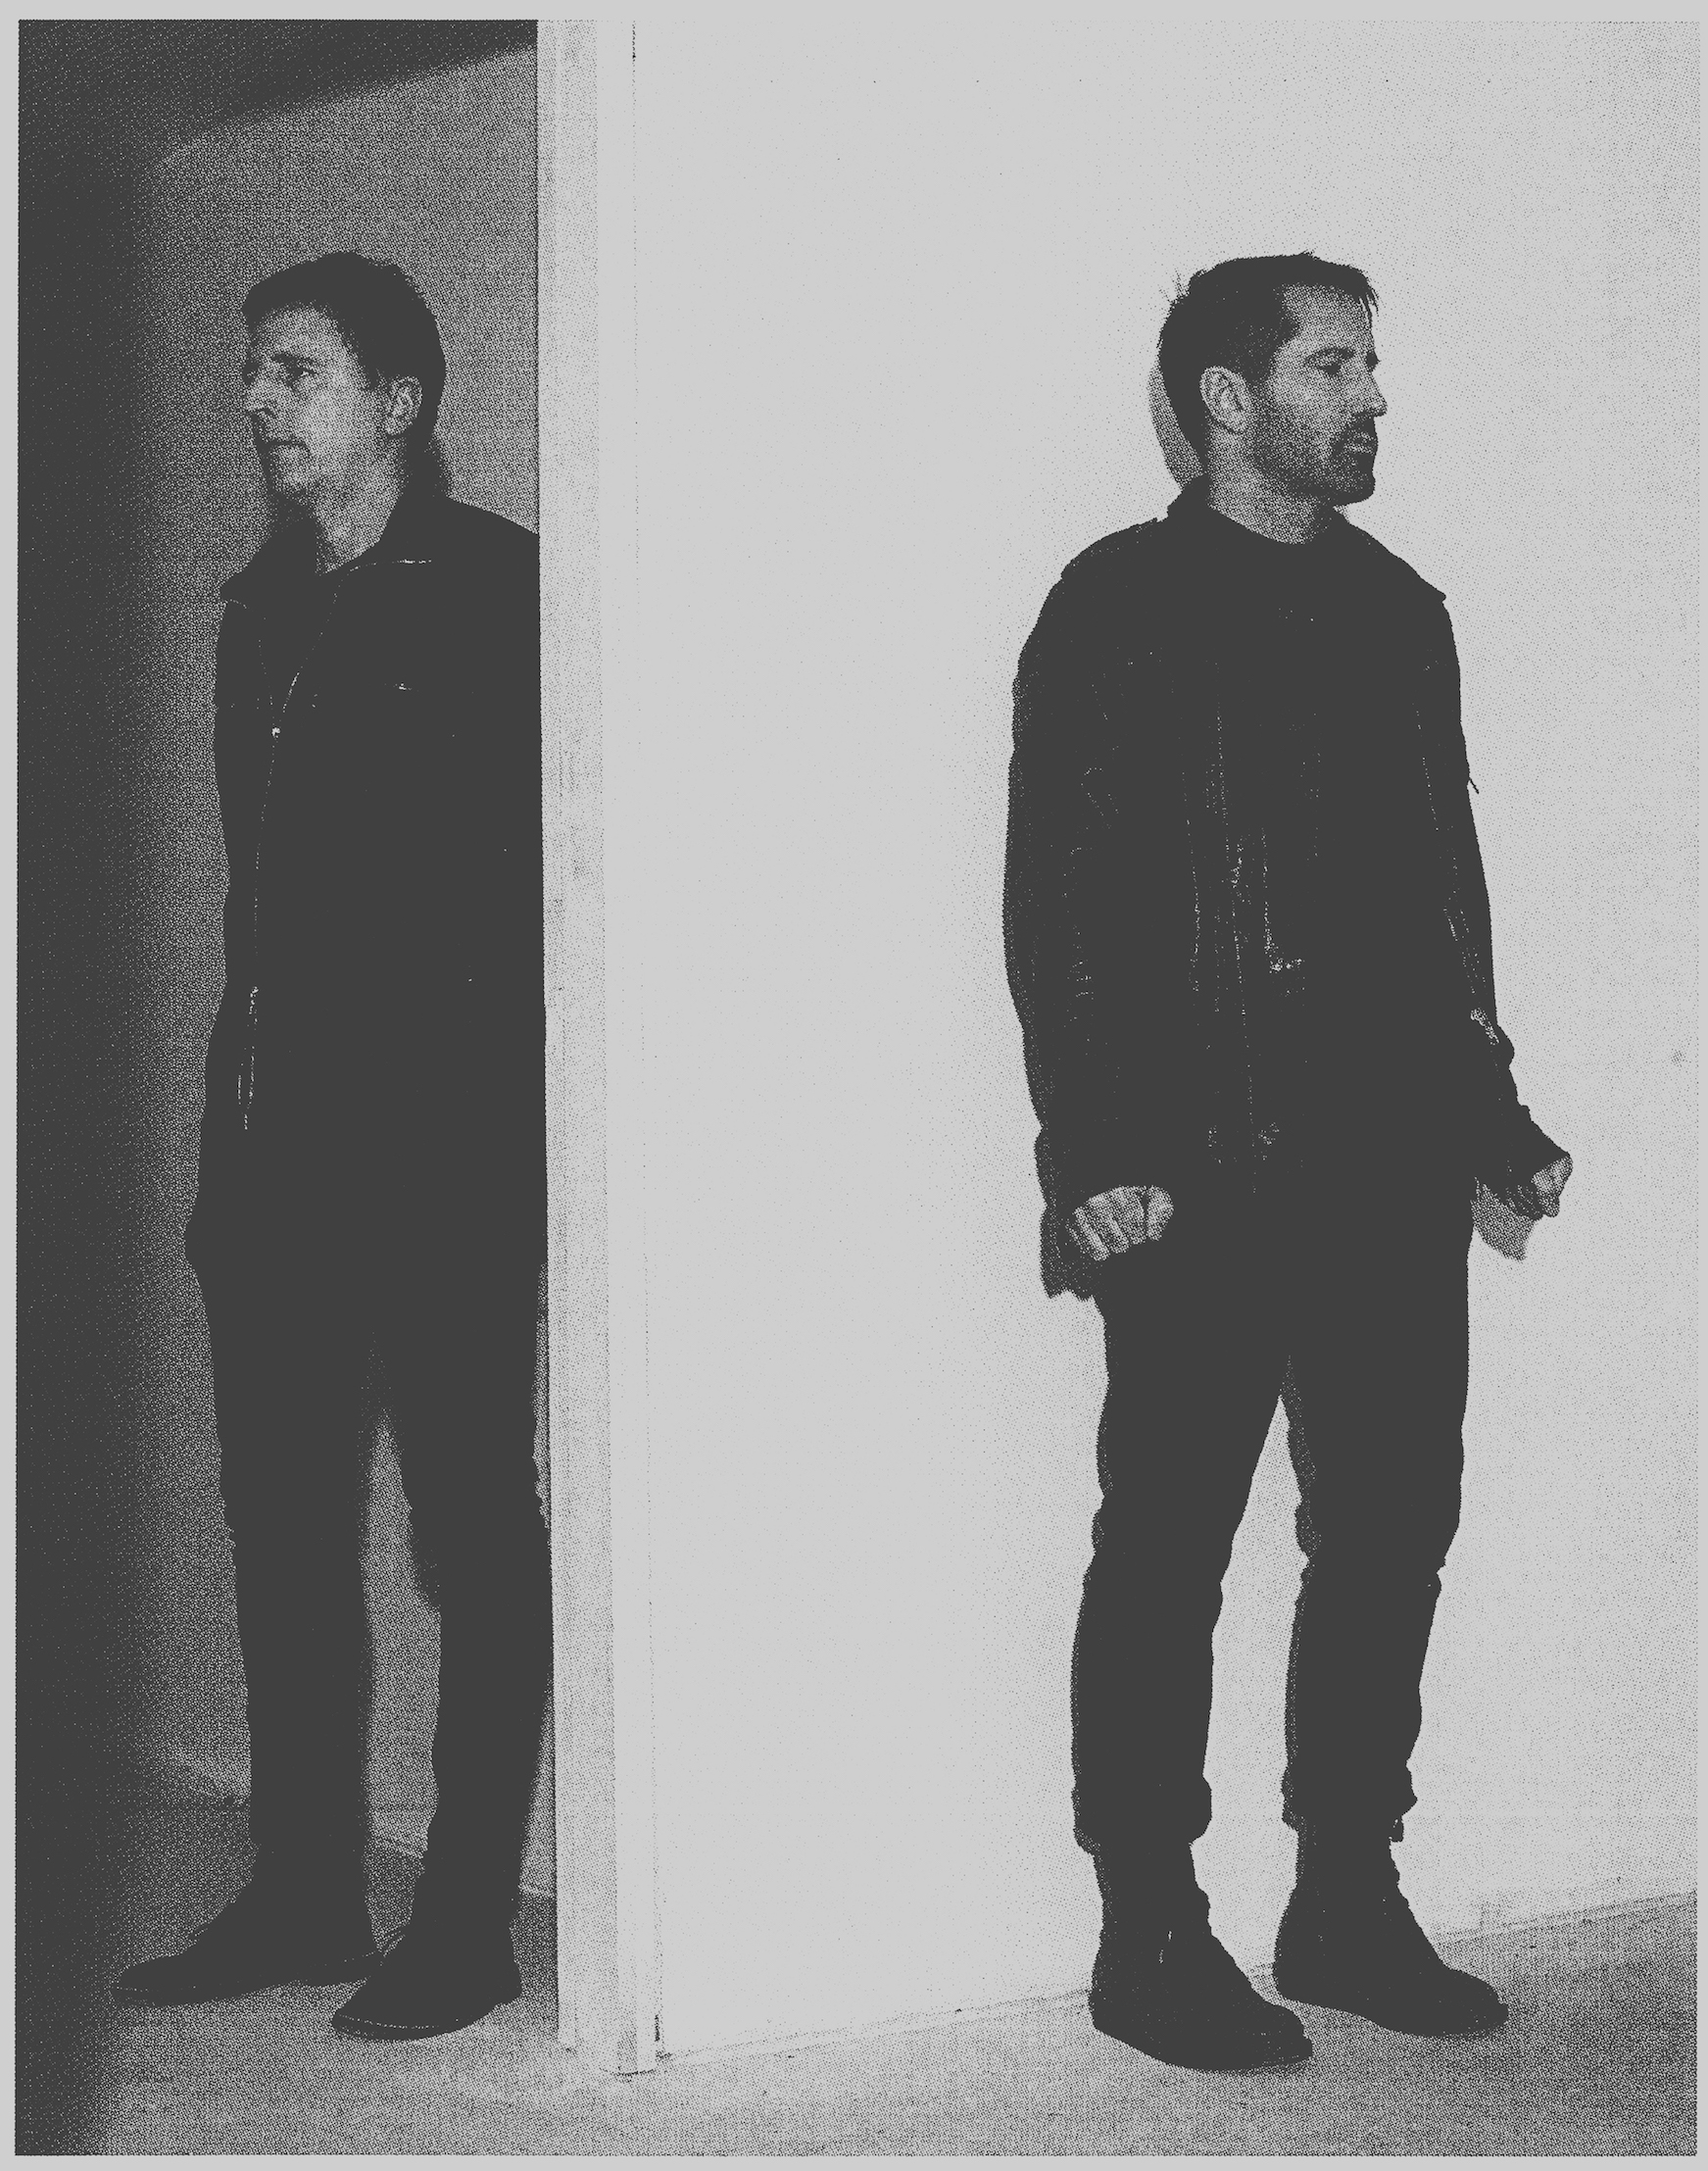 Nine Inch Nails, photo by Corinne Schiavone